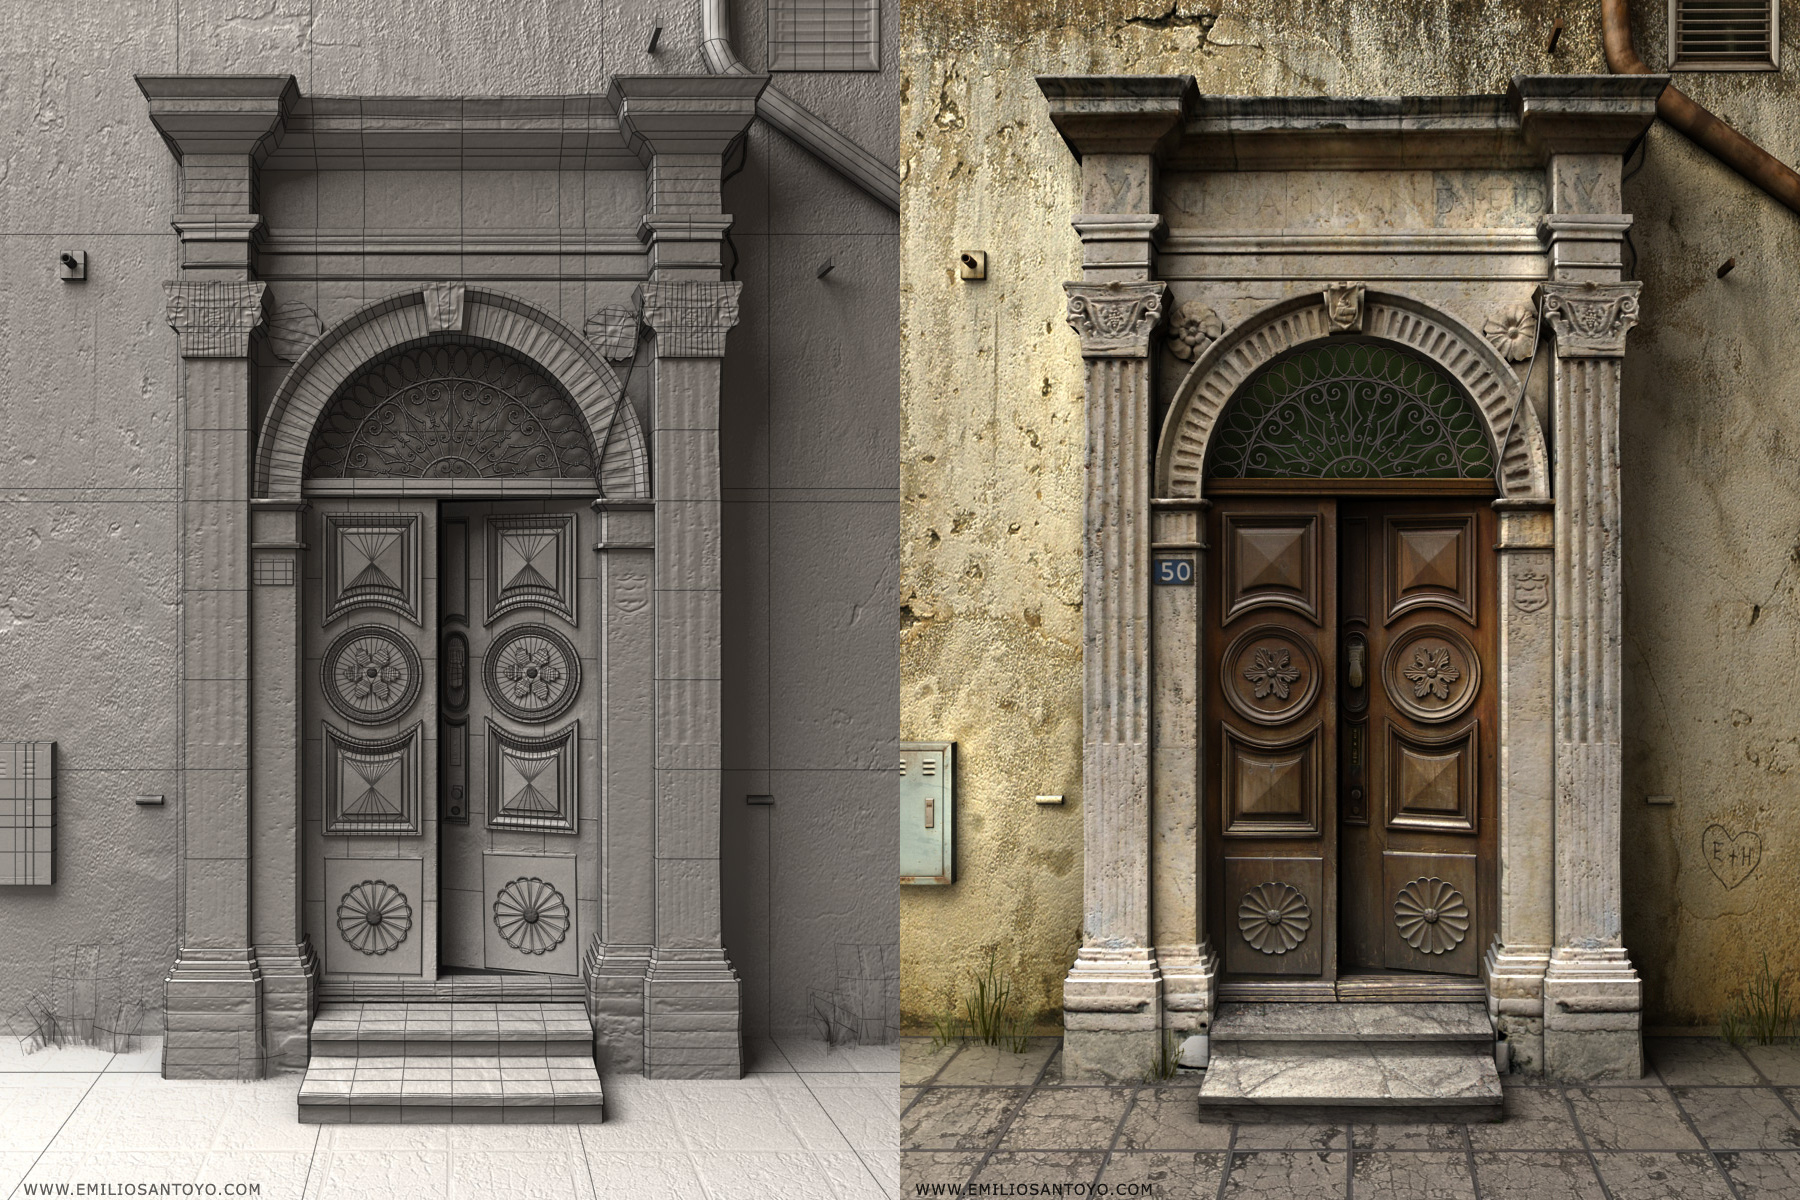 Doorway Scene. Software used 3ds Max, PhotoShop, and Zbrush.